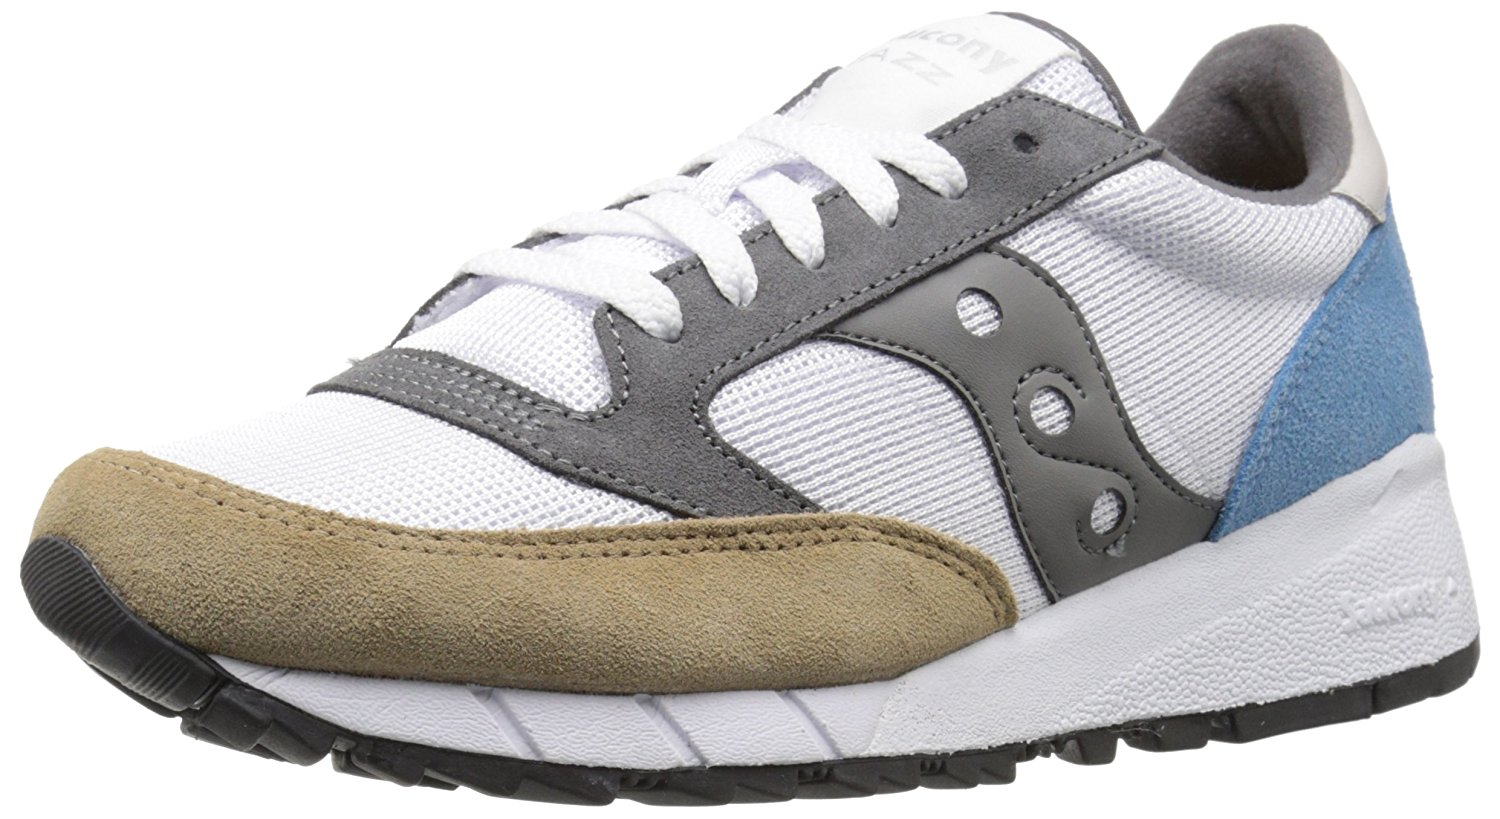 598f7abf46e0 Saucony Originals Men s Jazz 91 Fashion Sneakers